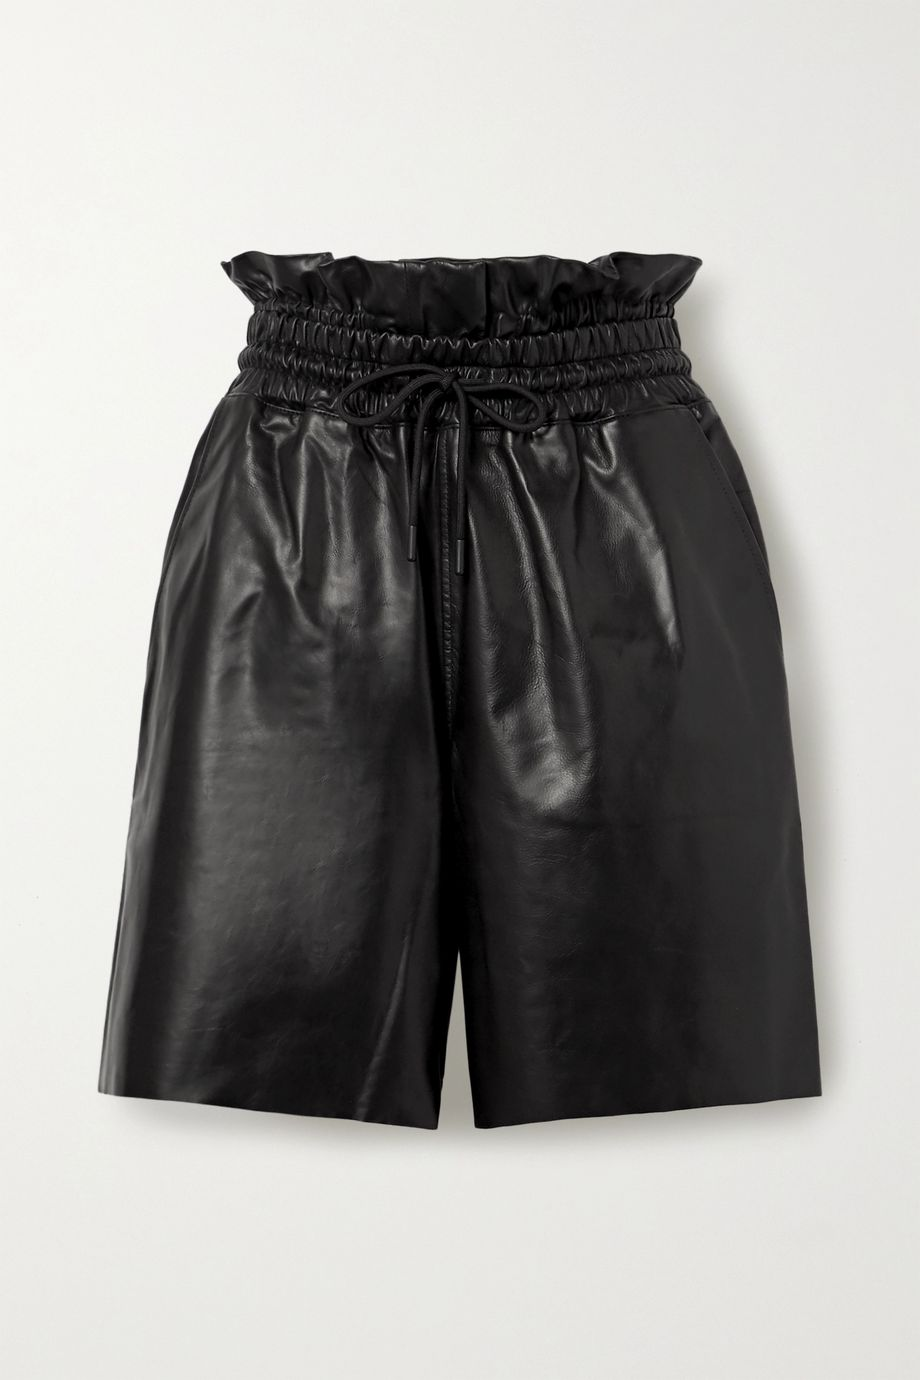 RtA Amata leather shorts